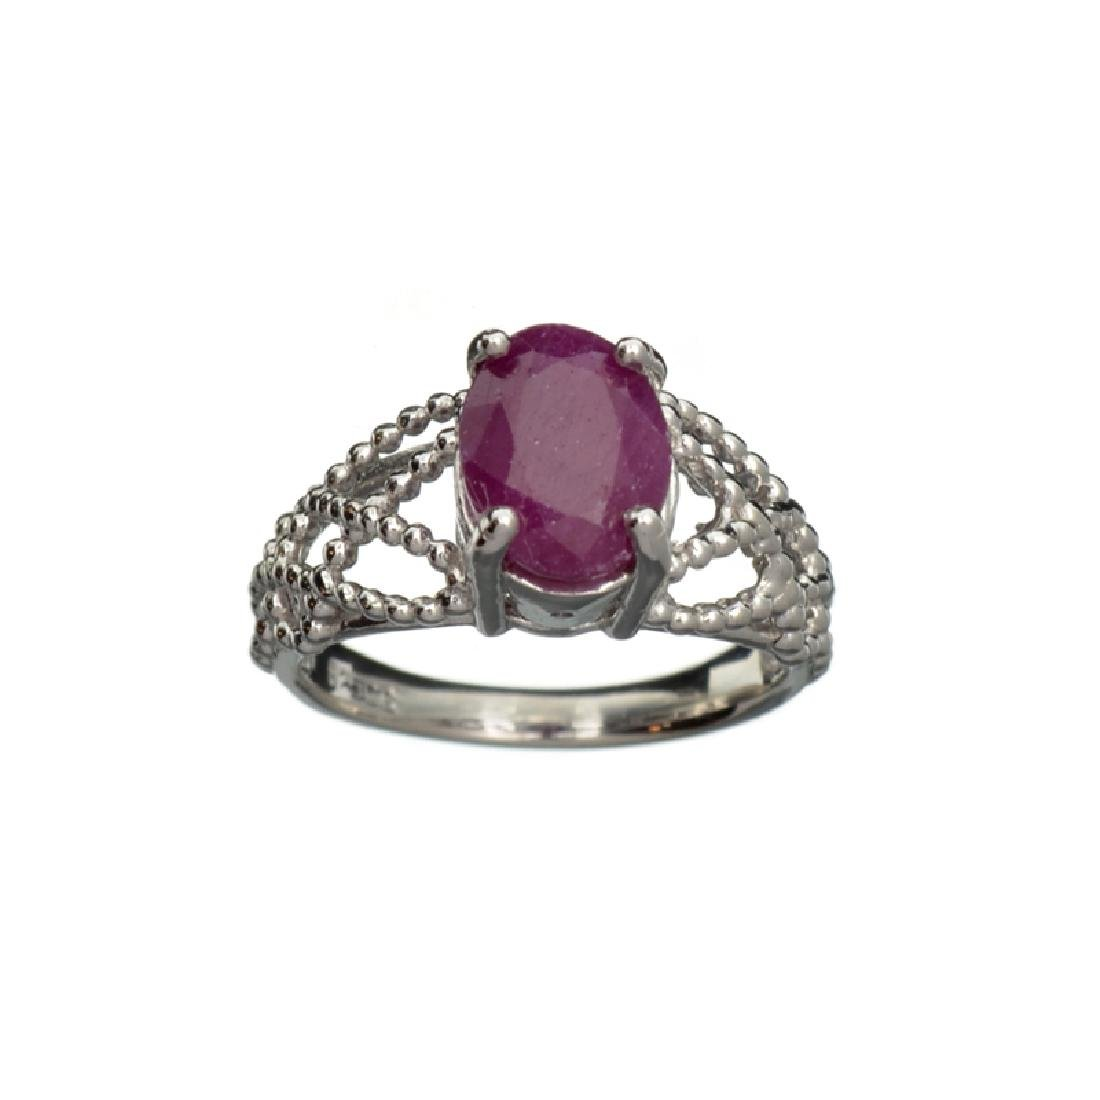 APP: 0.6k Fine Jewelry 2.50CT Oval Cut Ruby And